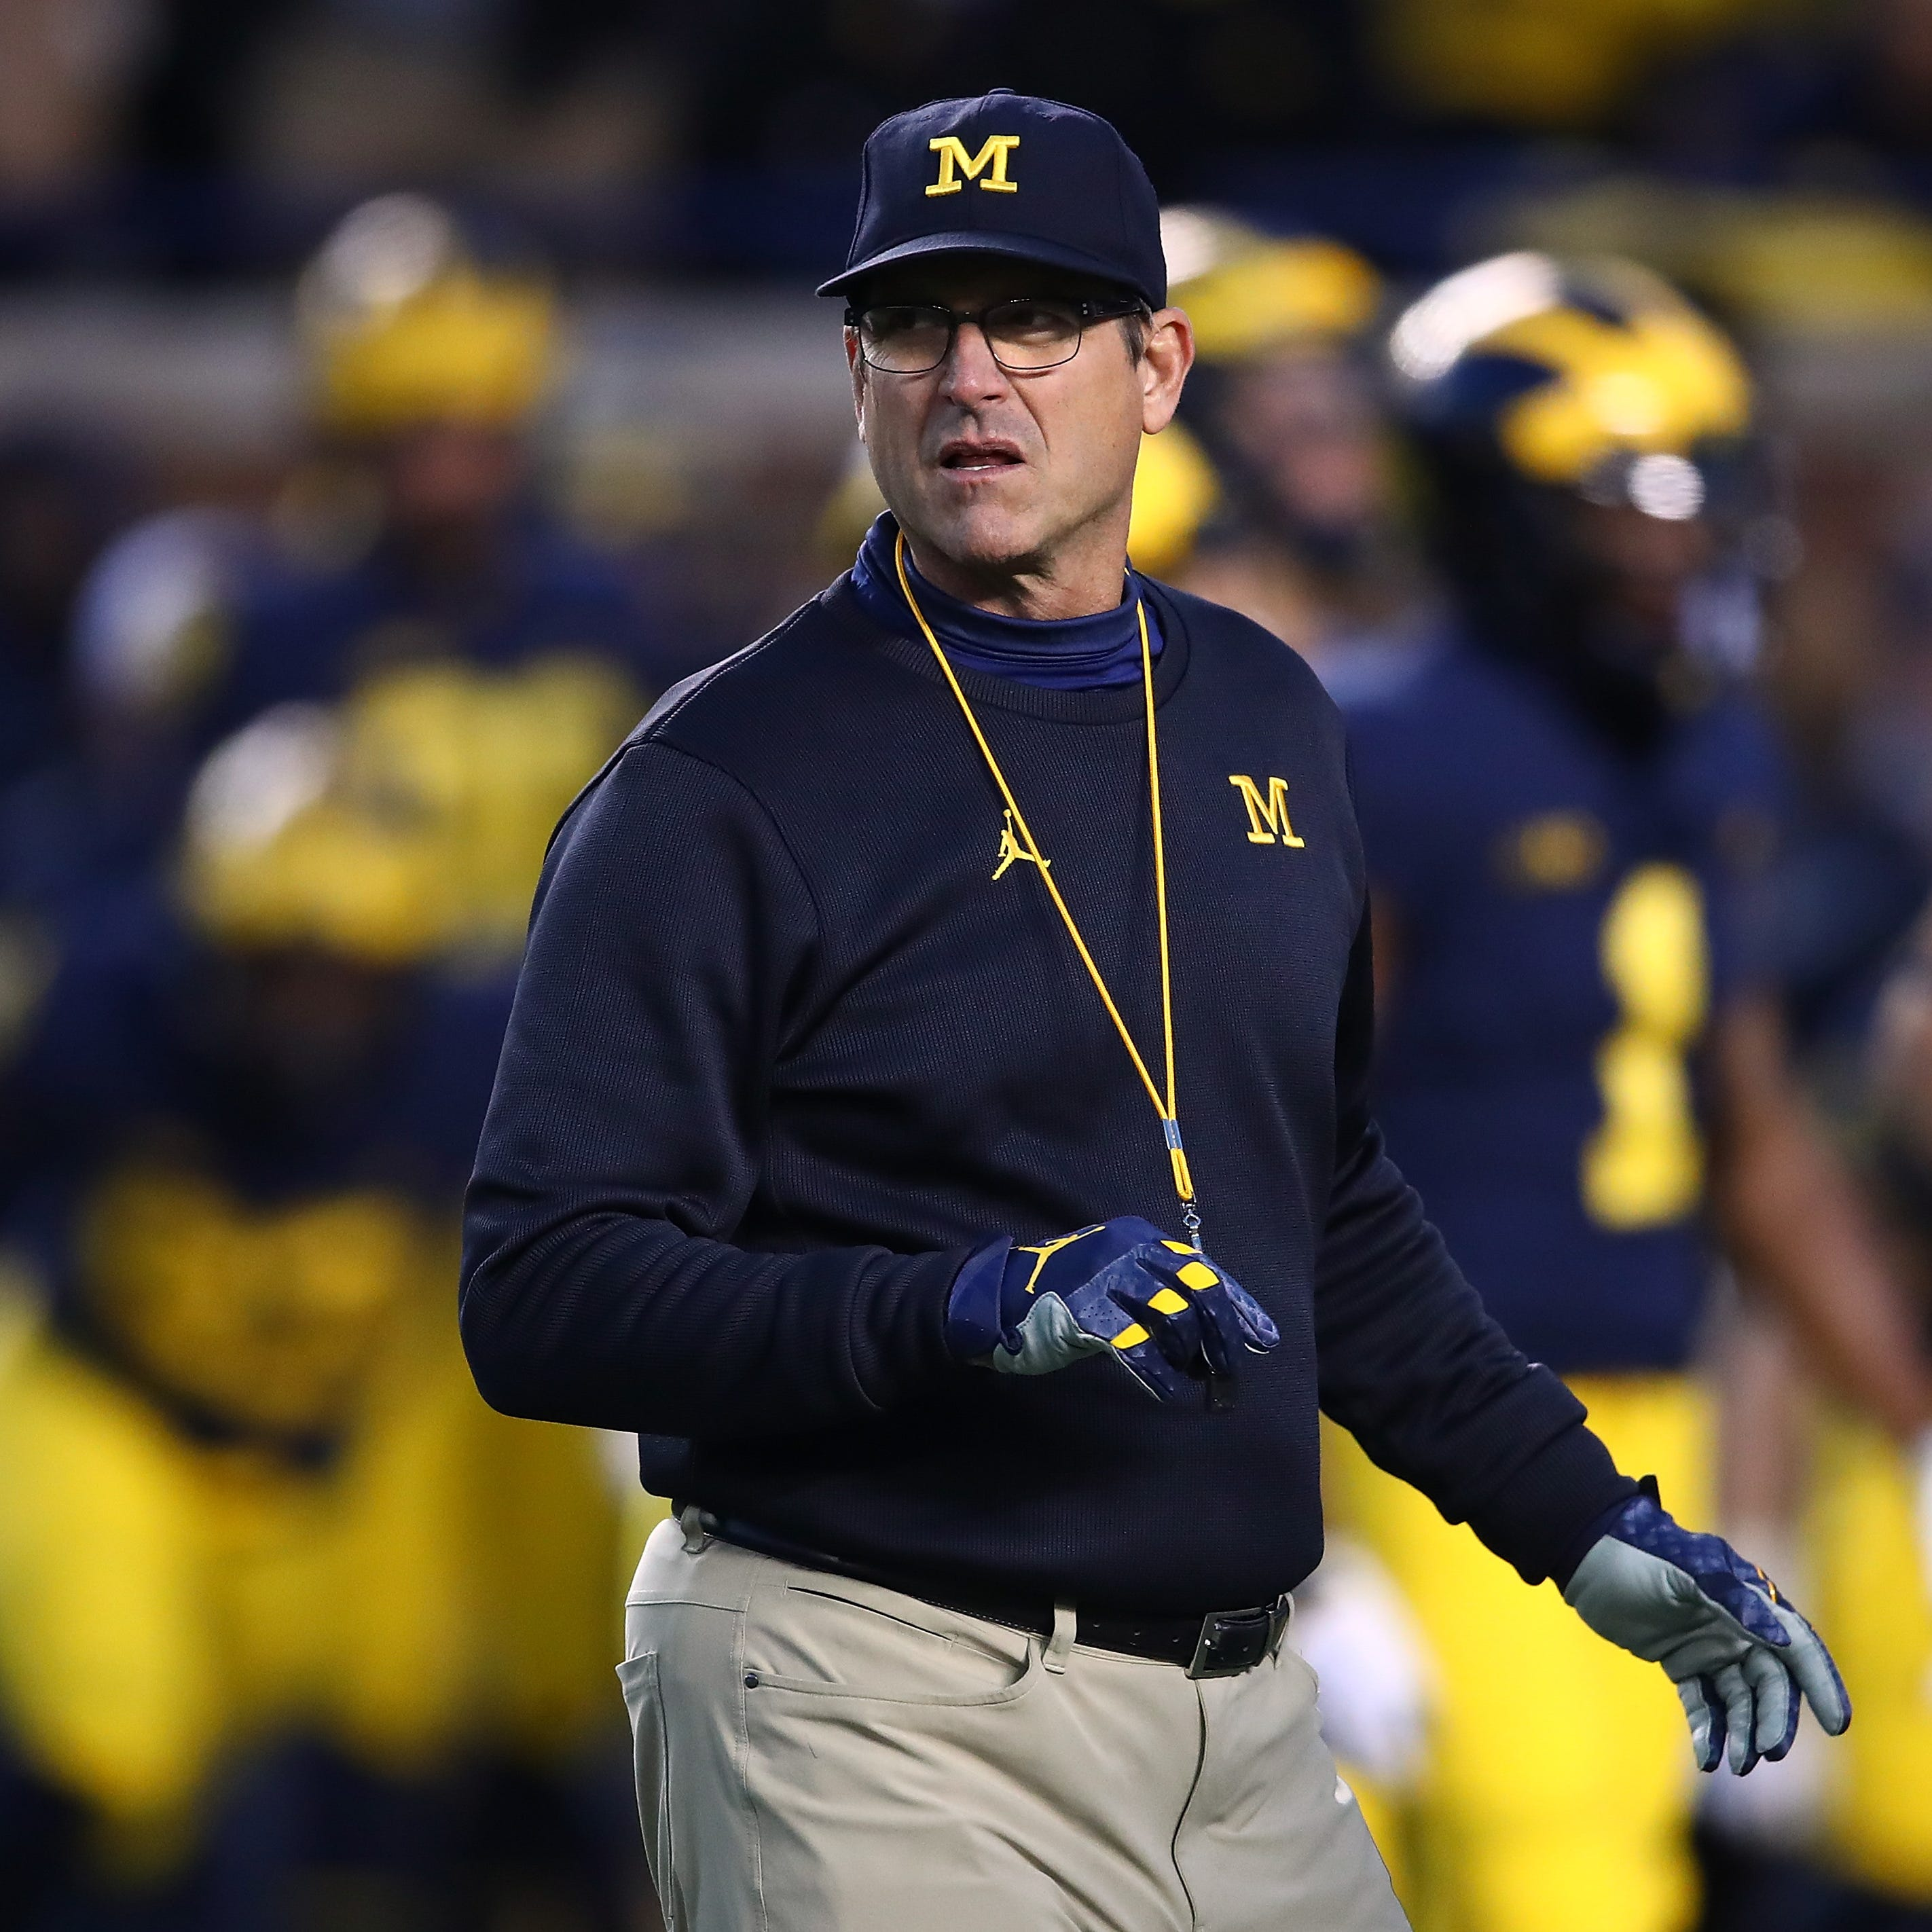 Wojo's Pigskin Picks: Title path is clear and Wolverines can't mess it up